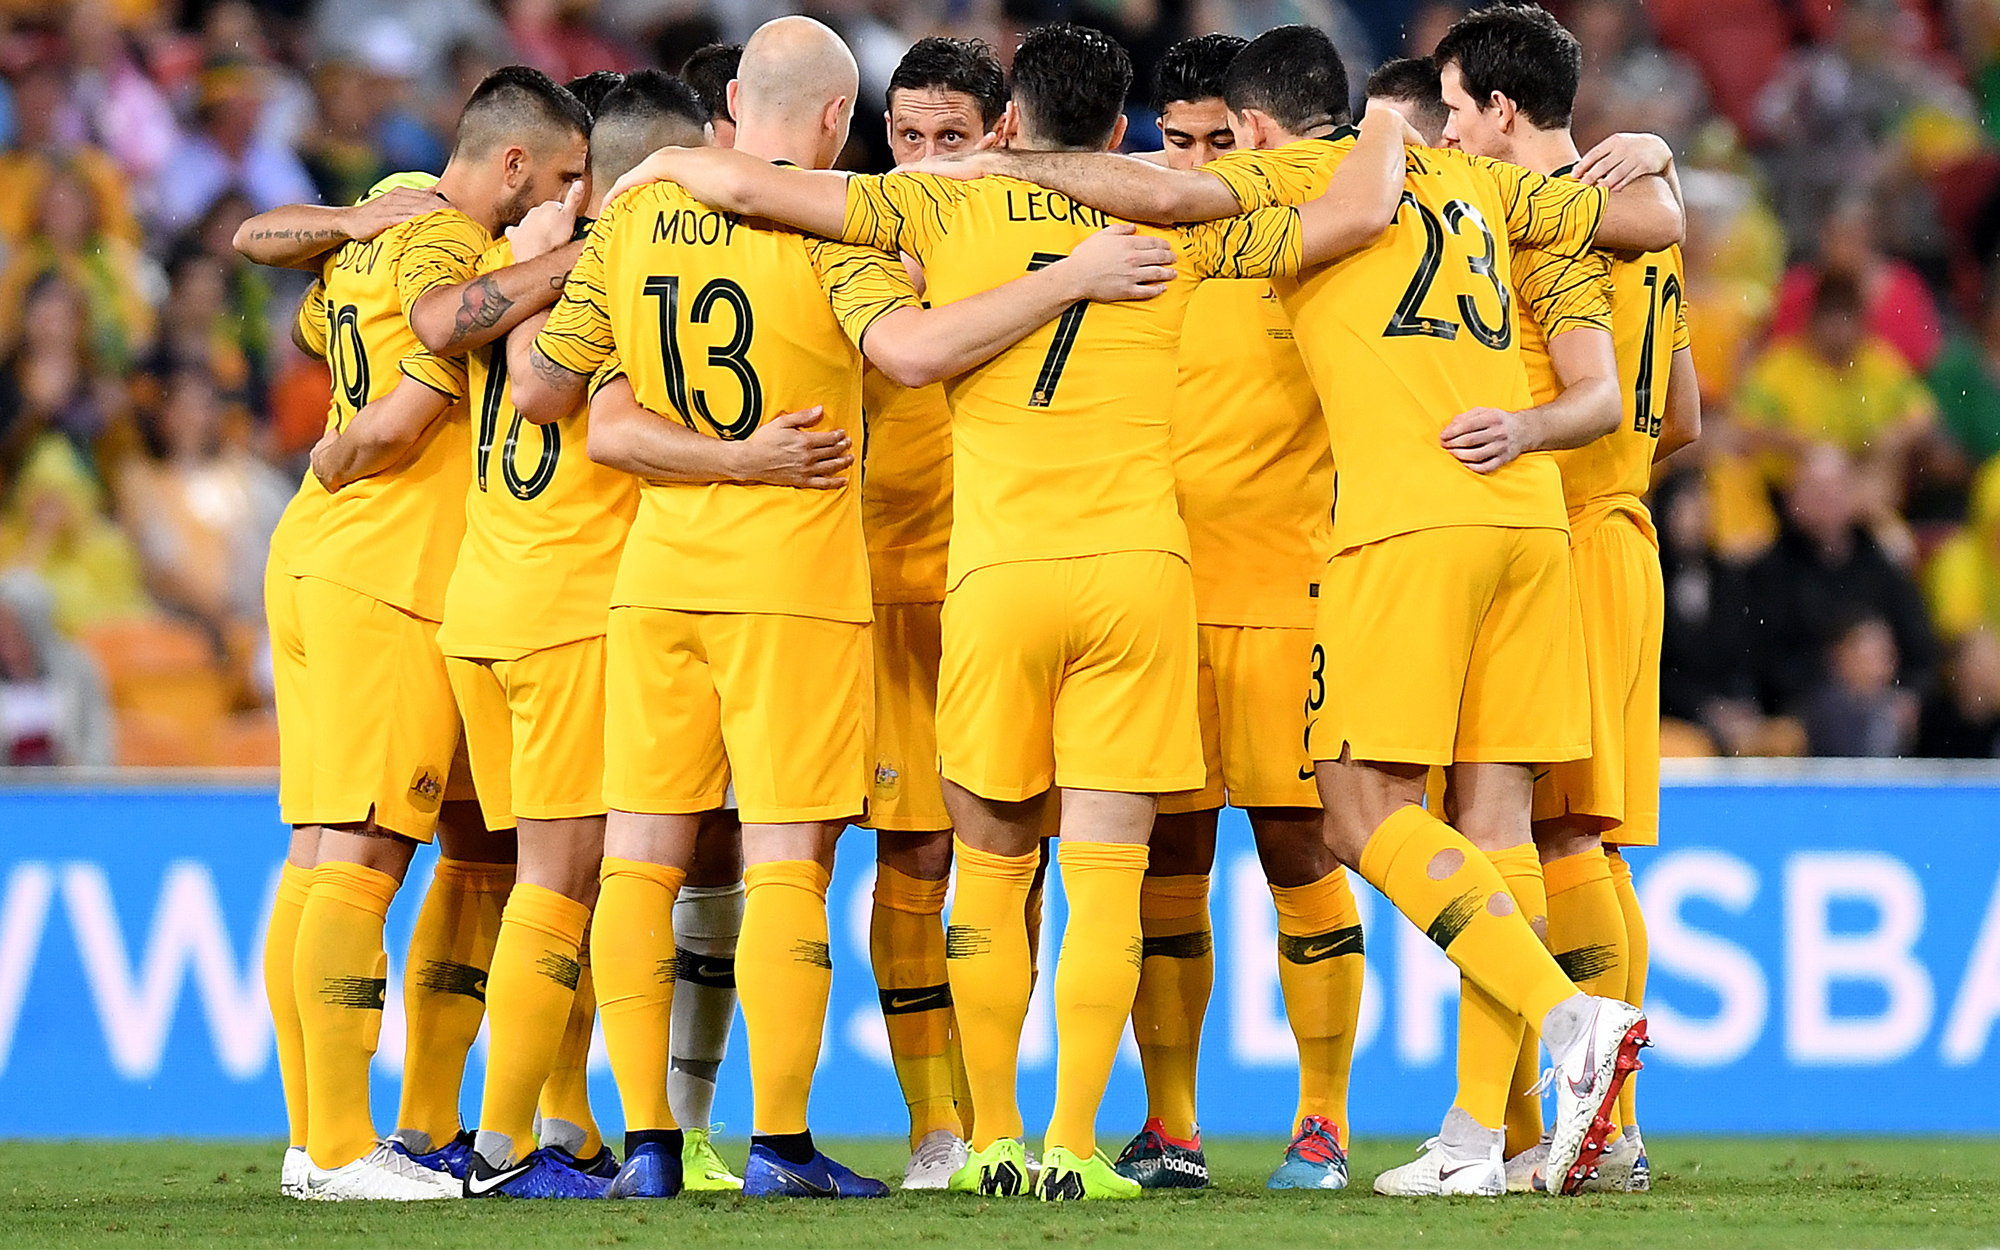 Graham Arnold names first Caltex Socceroos squad on journey to Qatar 2022